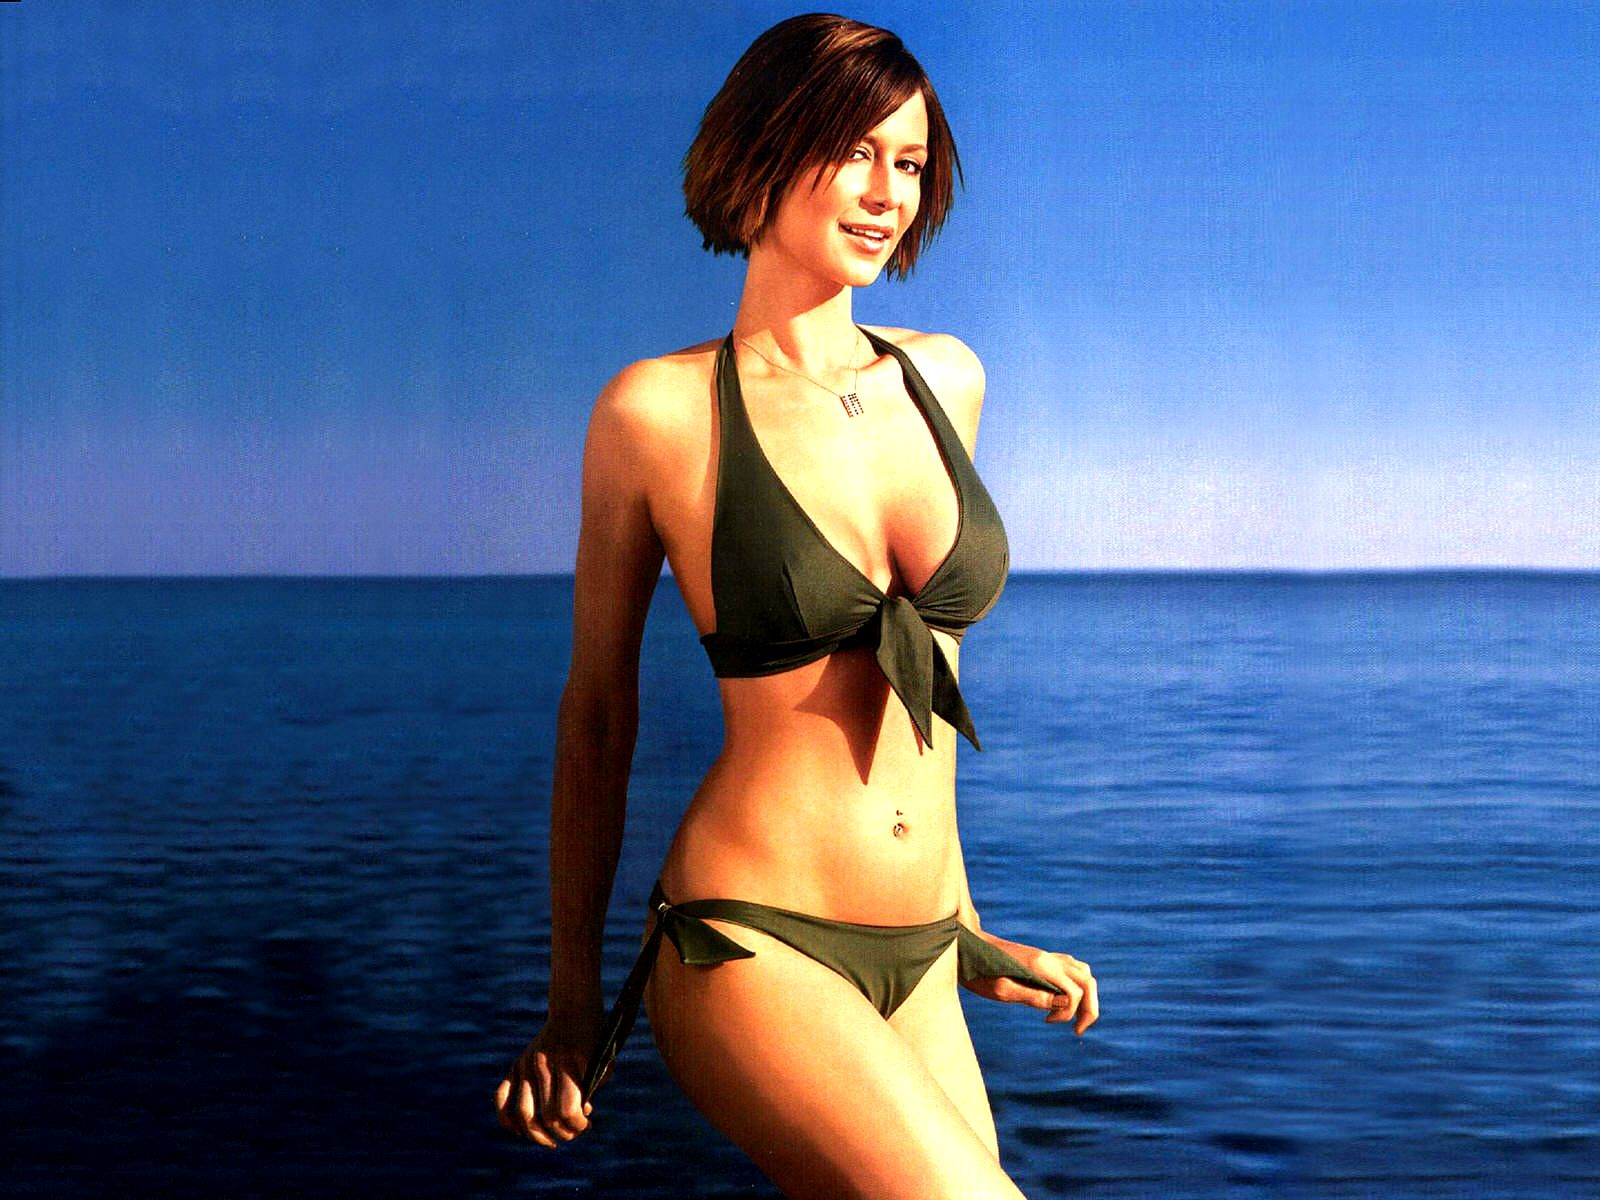 1600x1200 - Catherine Bell Wallpapers 6